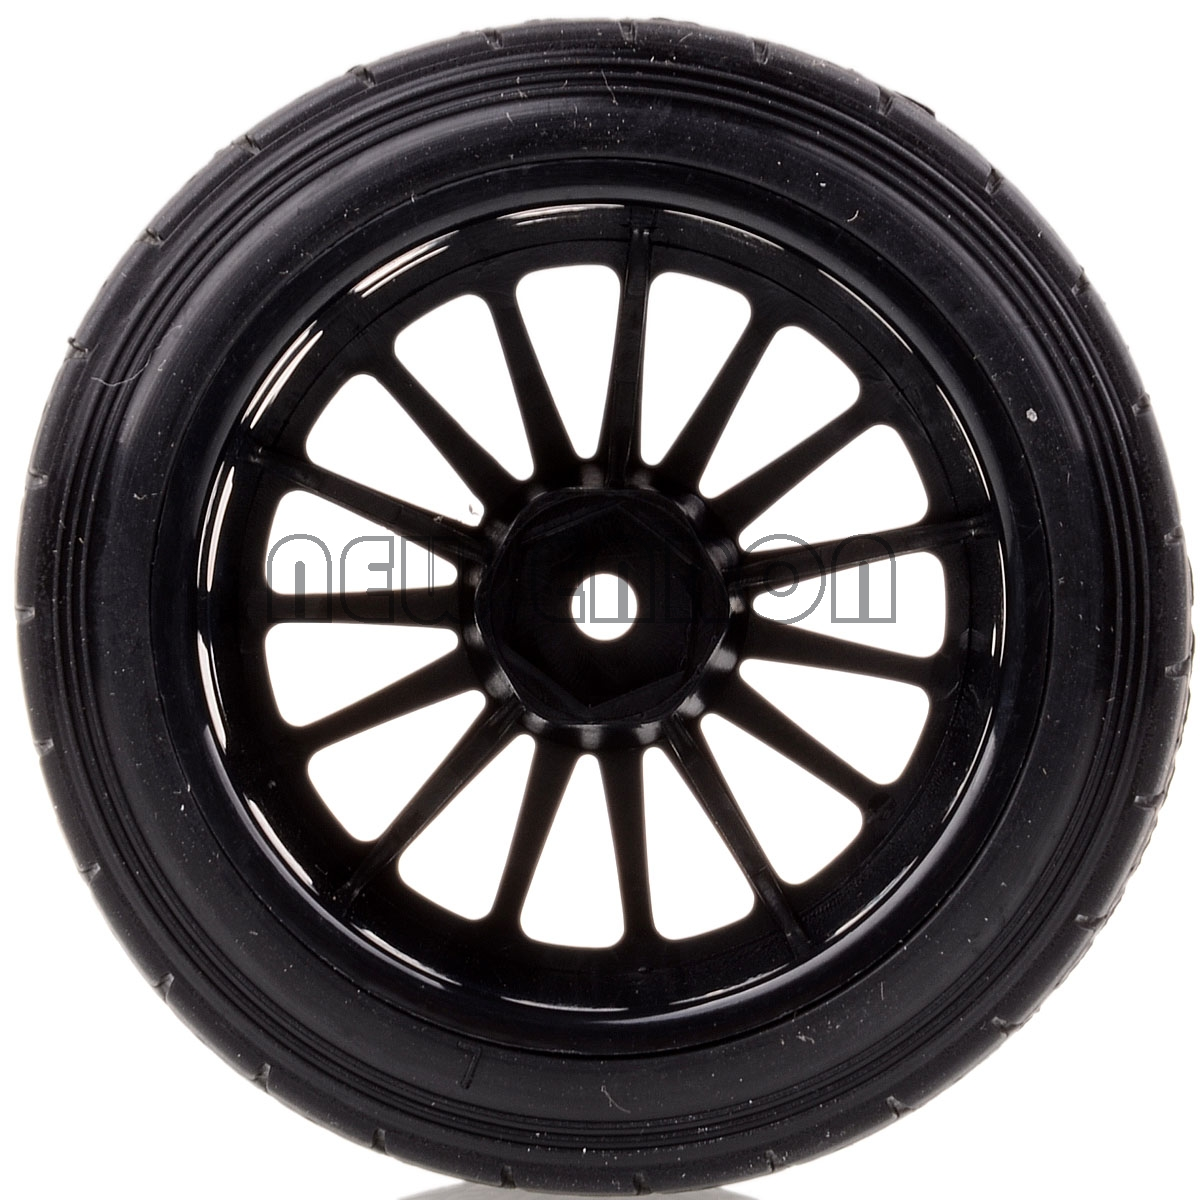 """Image 4 - NEW ENRON RC CAR PART RC 1/10 RC TIRES 4PCS 2.2"""" WHEEL Rim & Tires Tyre Fit 1/10 HPI WR8 Flux Rally 3.0 110697 94177-in Parts & Accessories from Toys & Hobbies"""